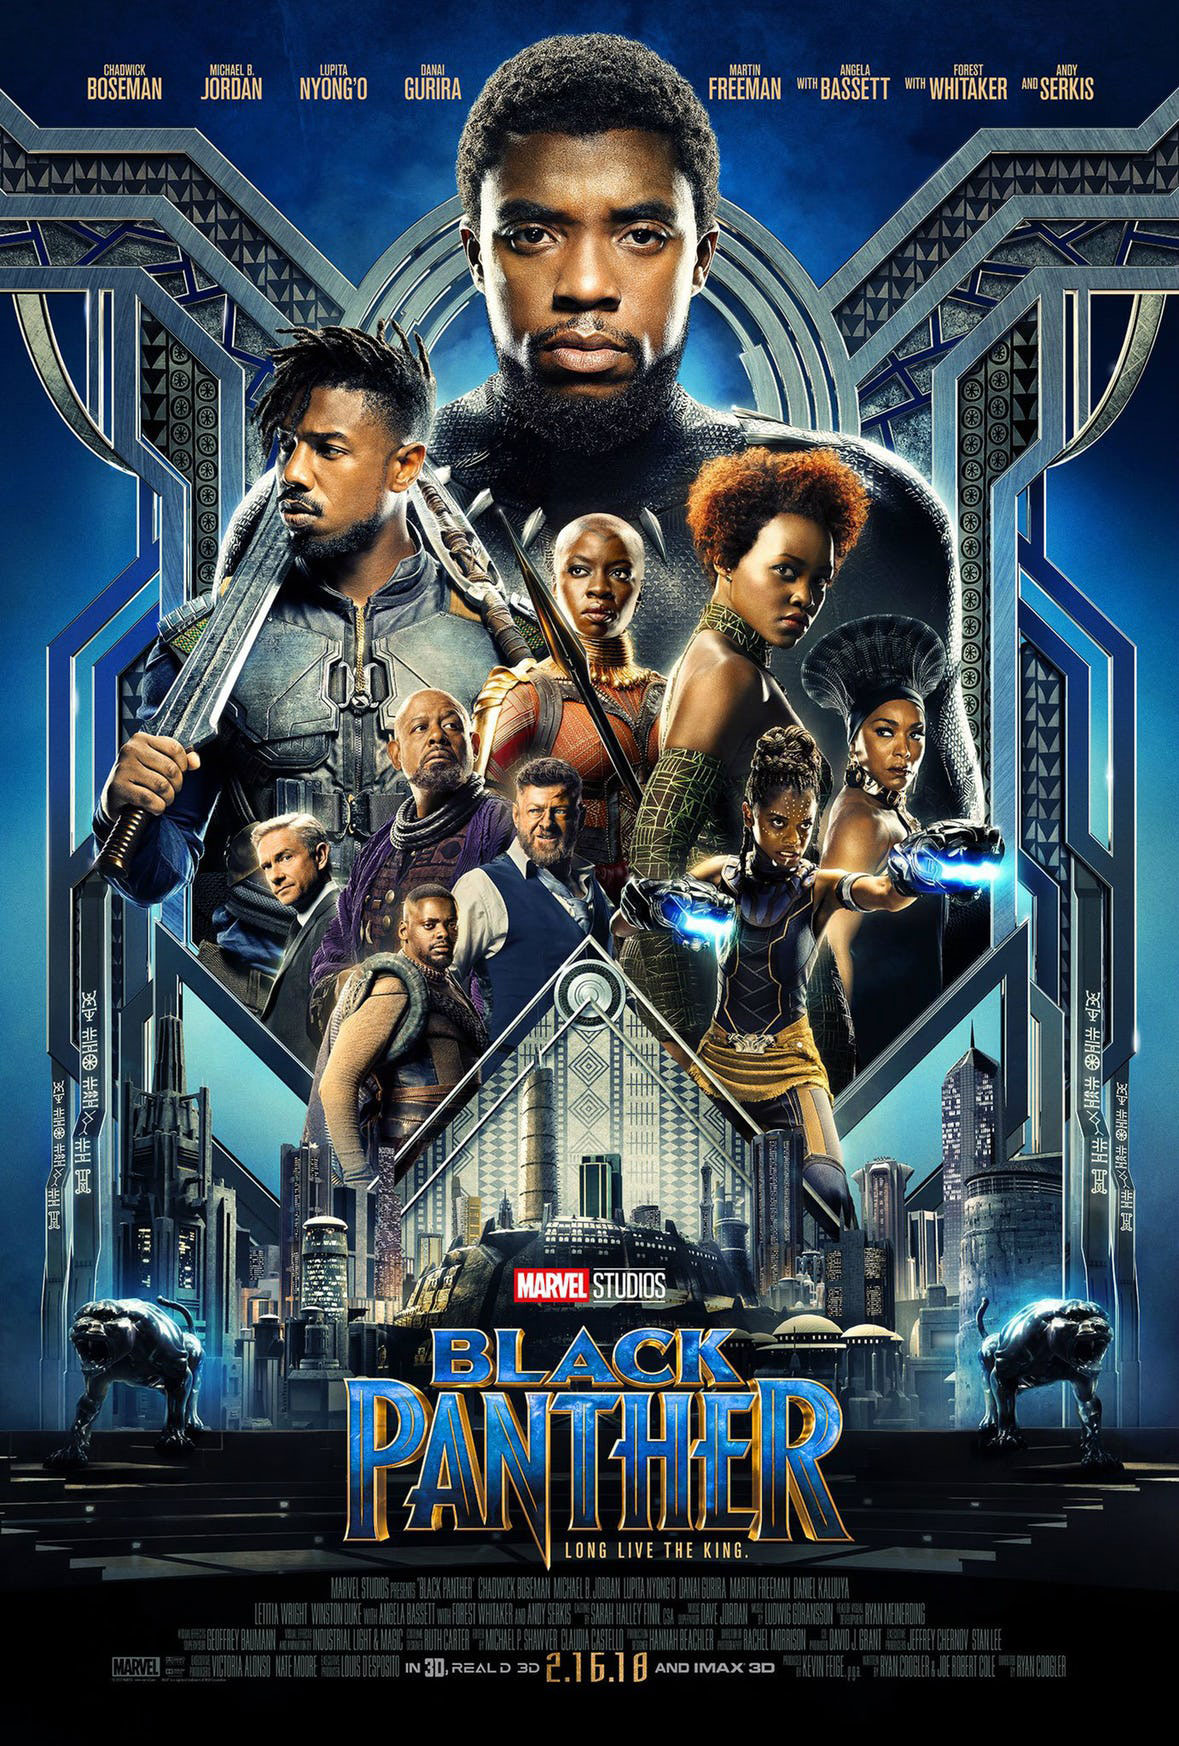 Black Panther film poster